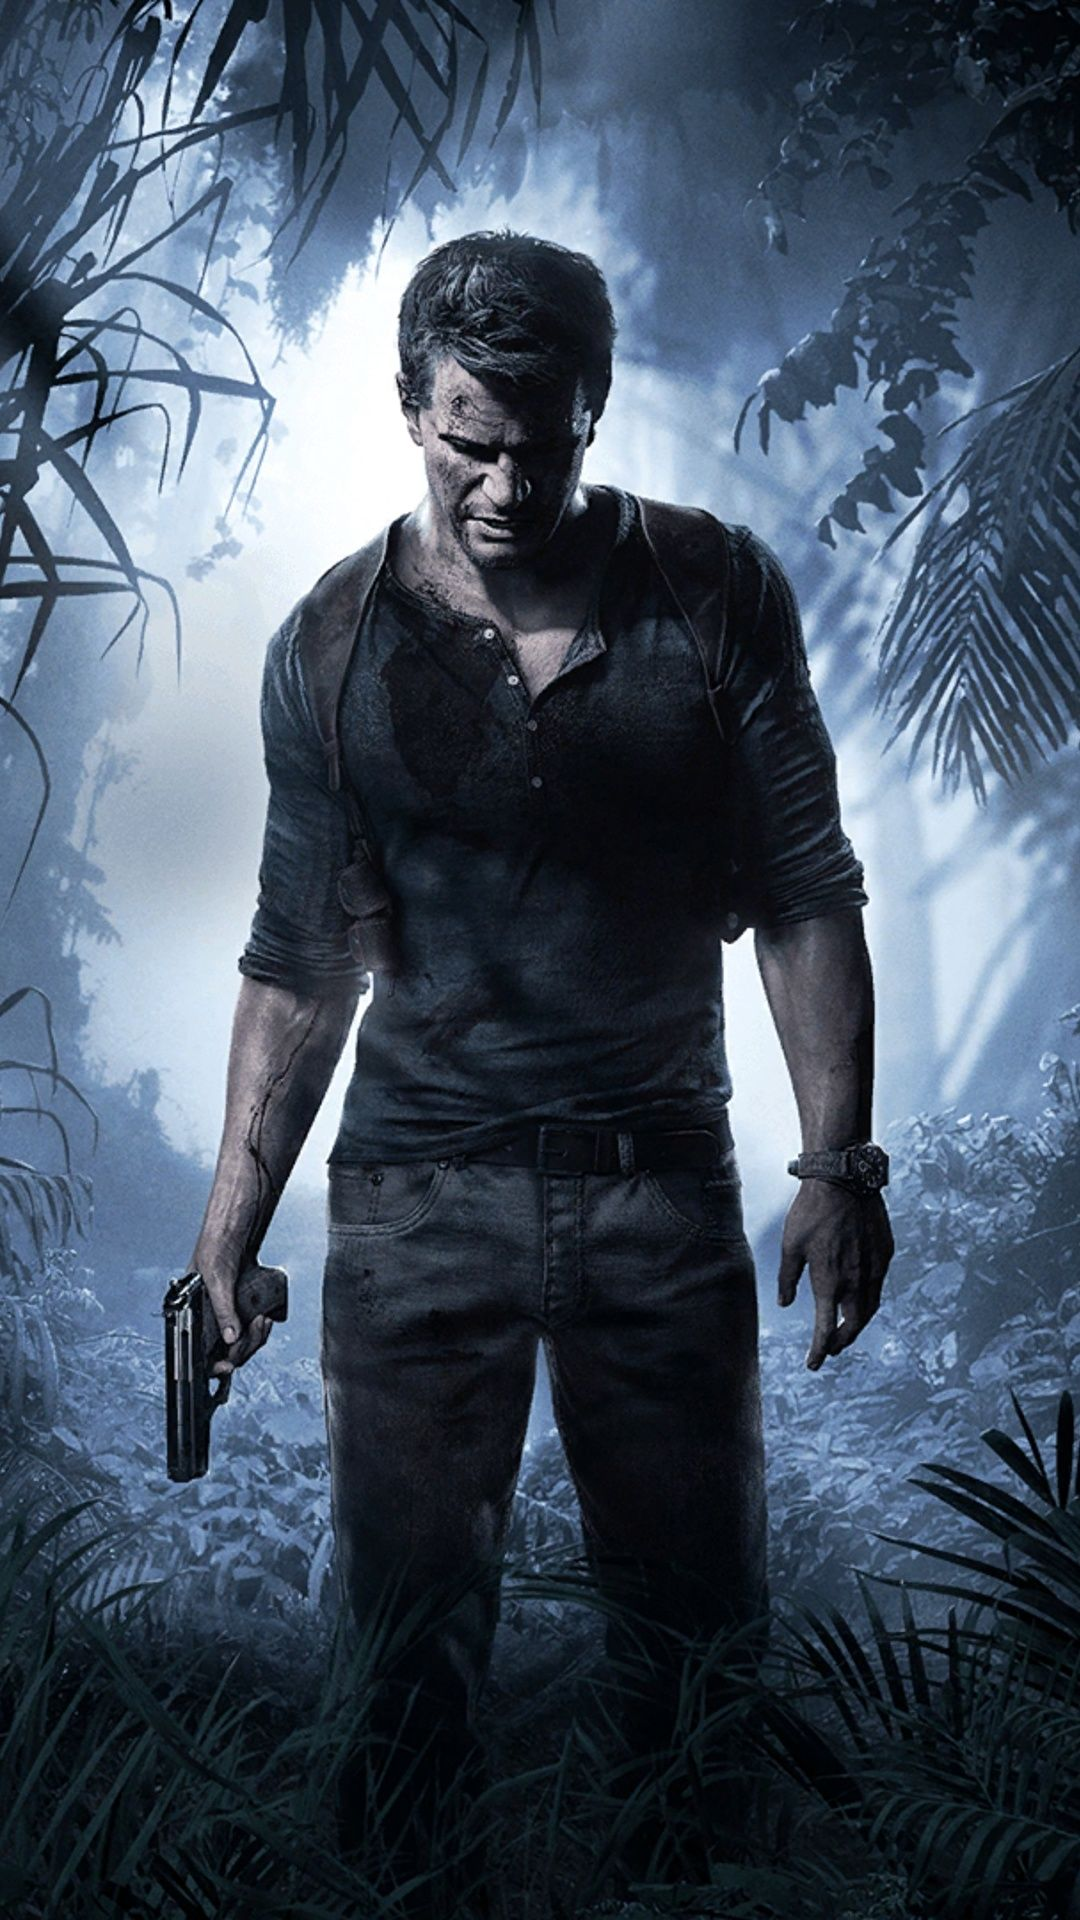 Uncharted 4 Wallpapers Iphone Background » Hupages